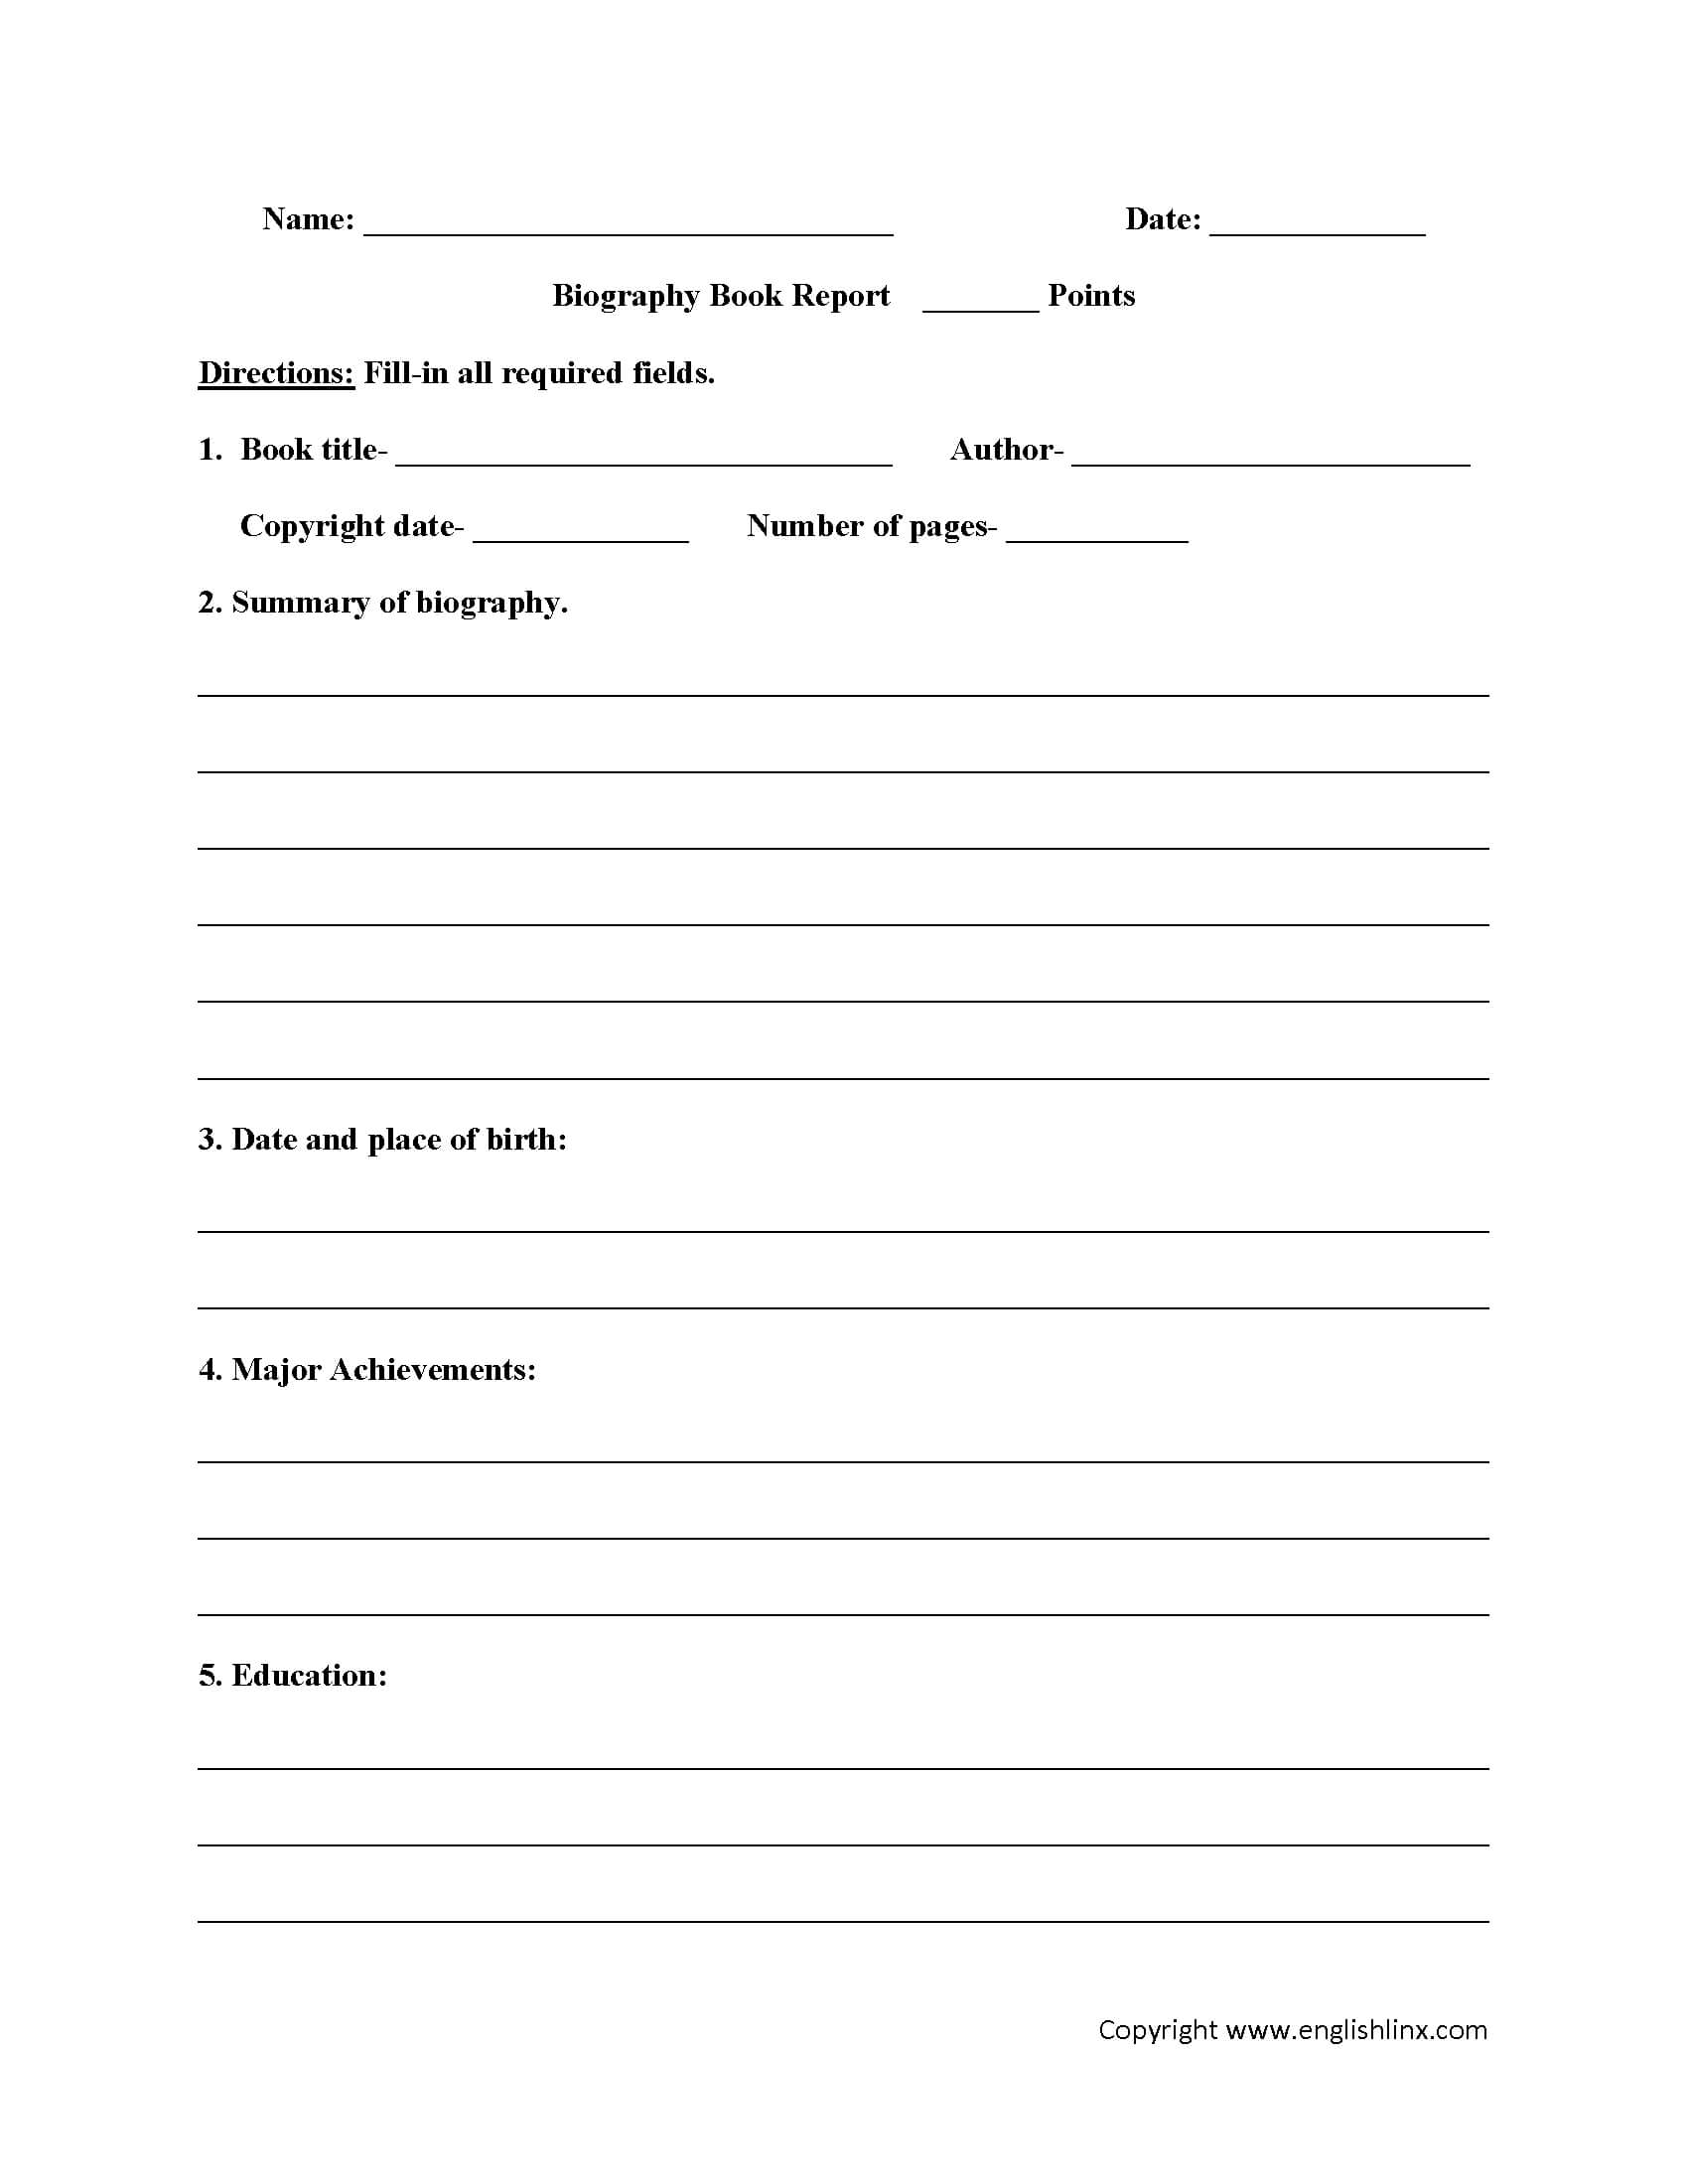 Book Report Worksheets | Biography Book Report Worksheets Intended For Biography Book Report Template